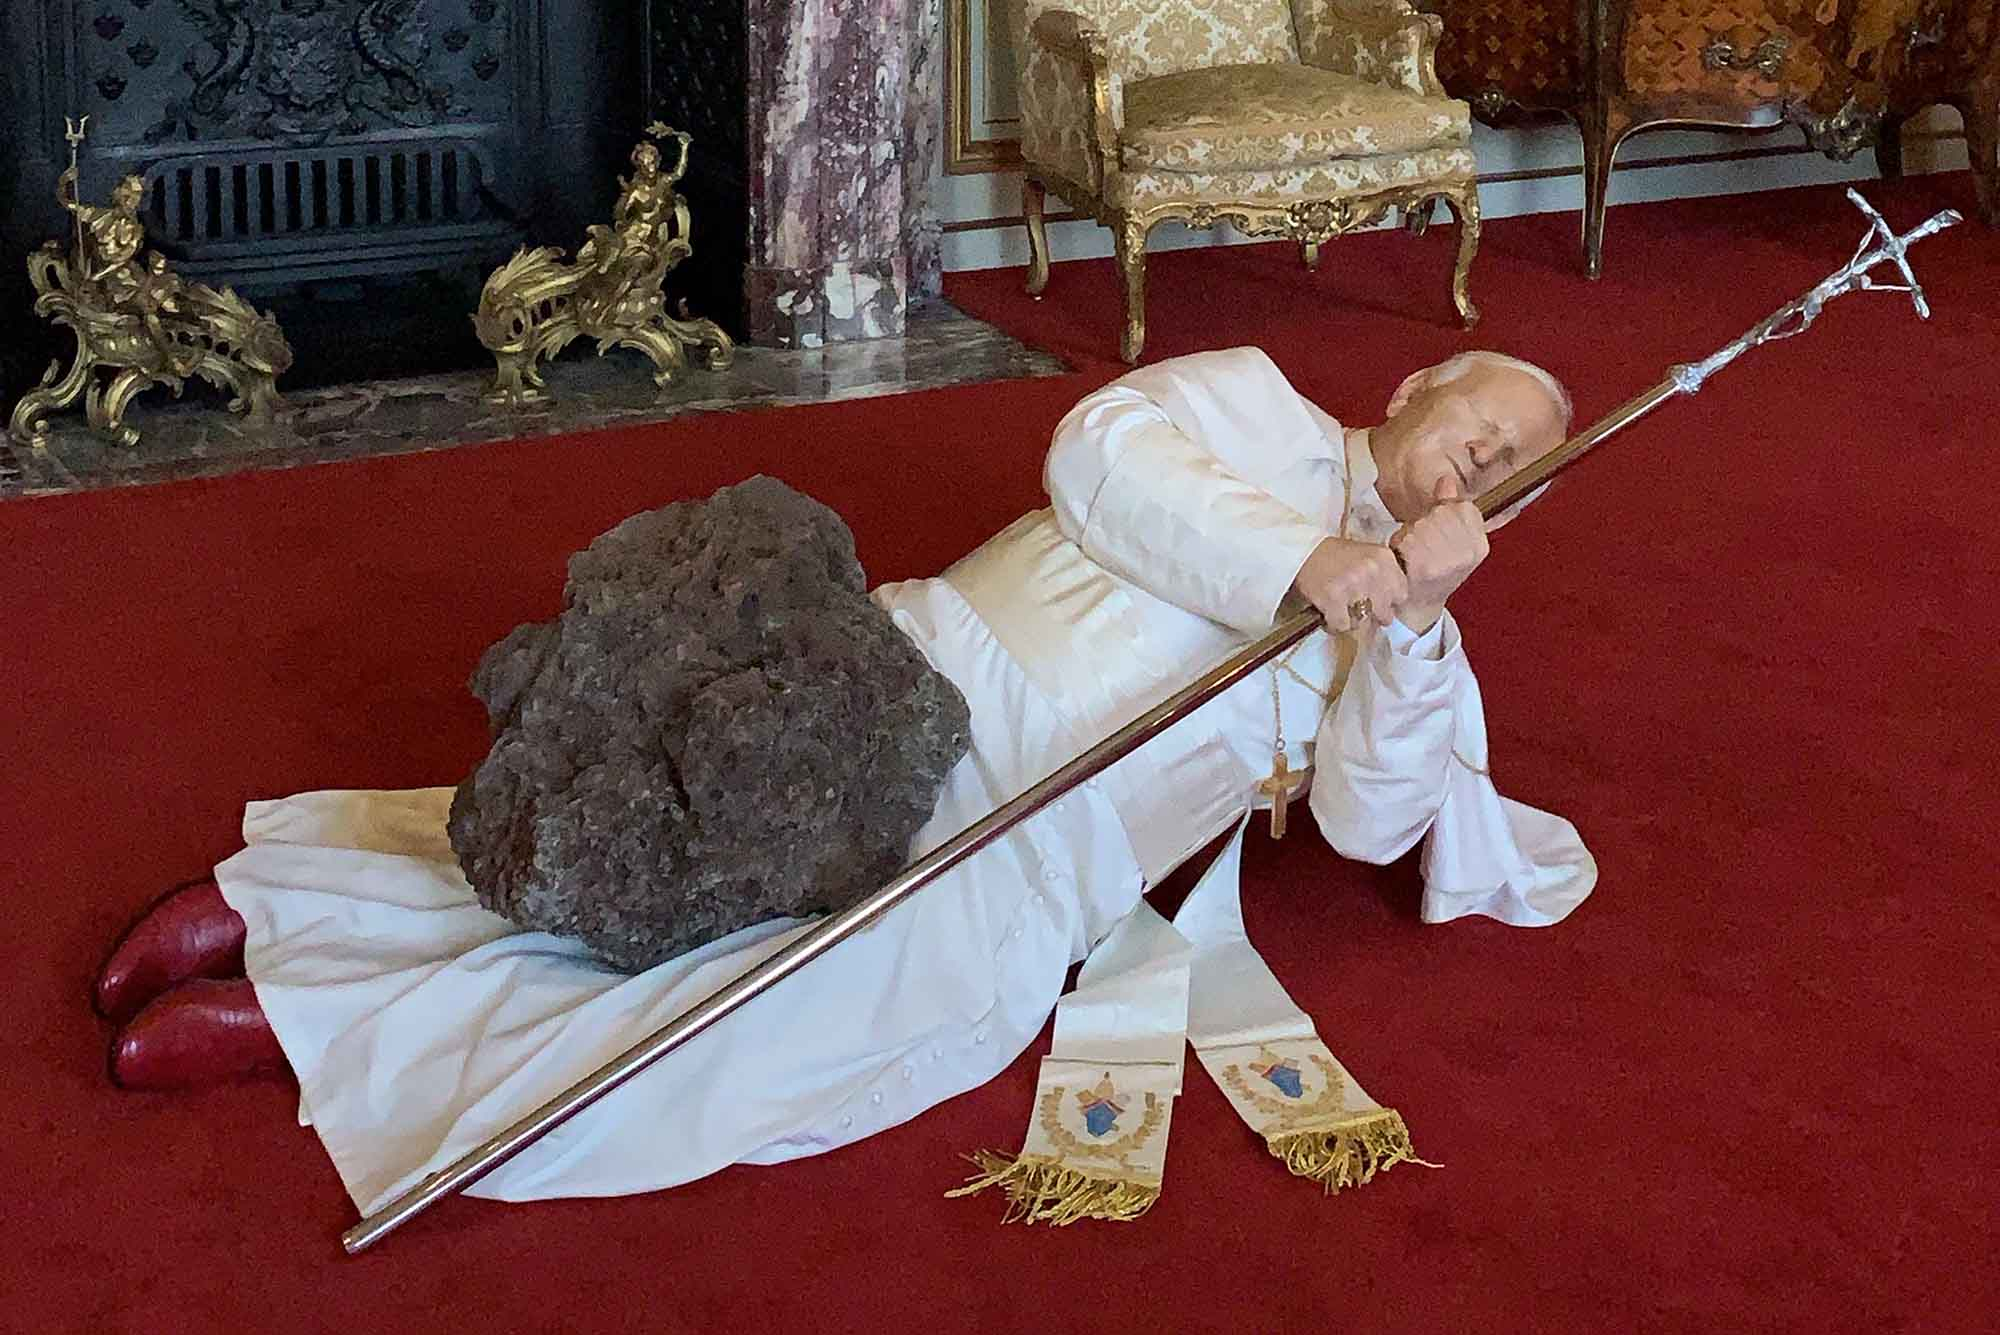 Maurizio Cattelan, Victory is Not an Option (2019), Blenheim Palace